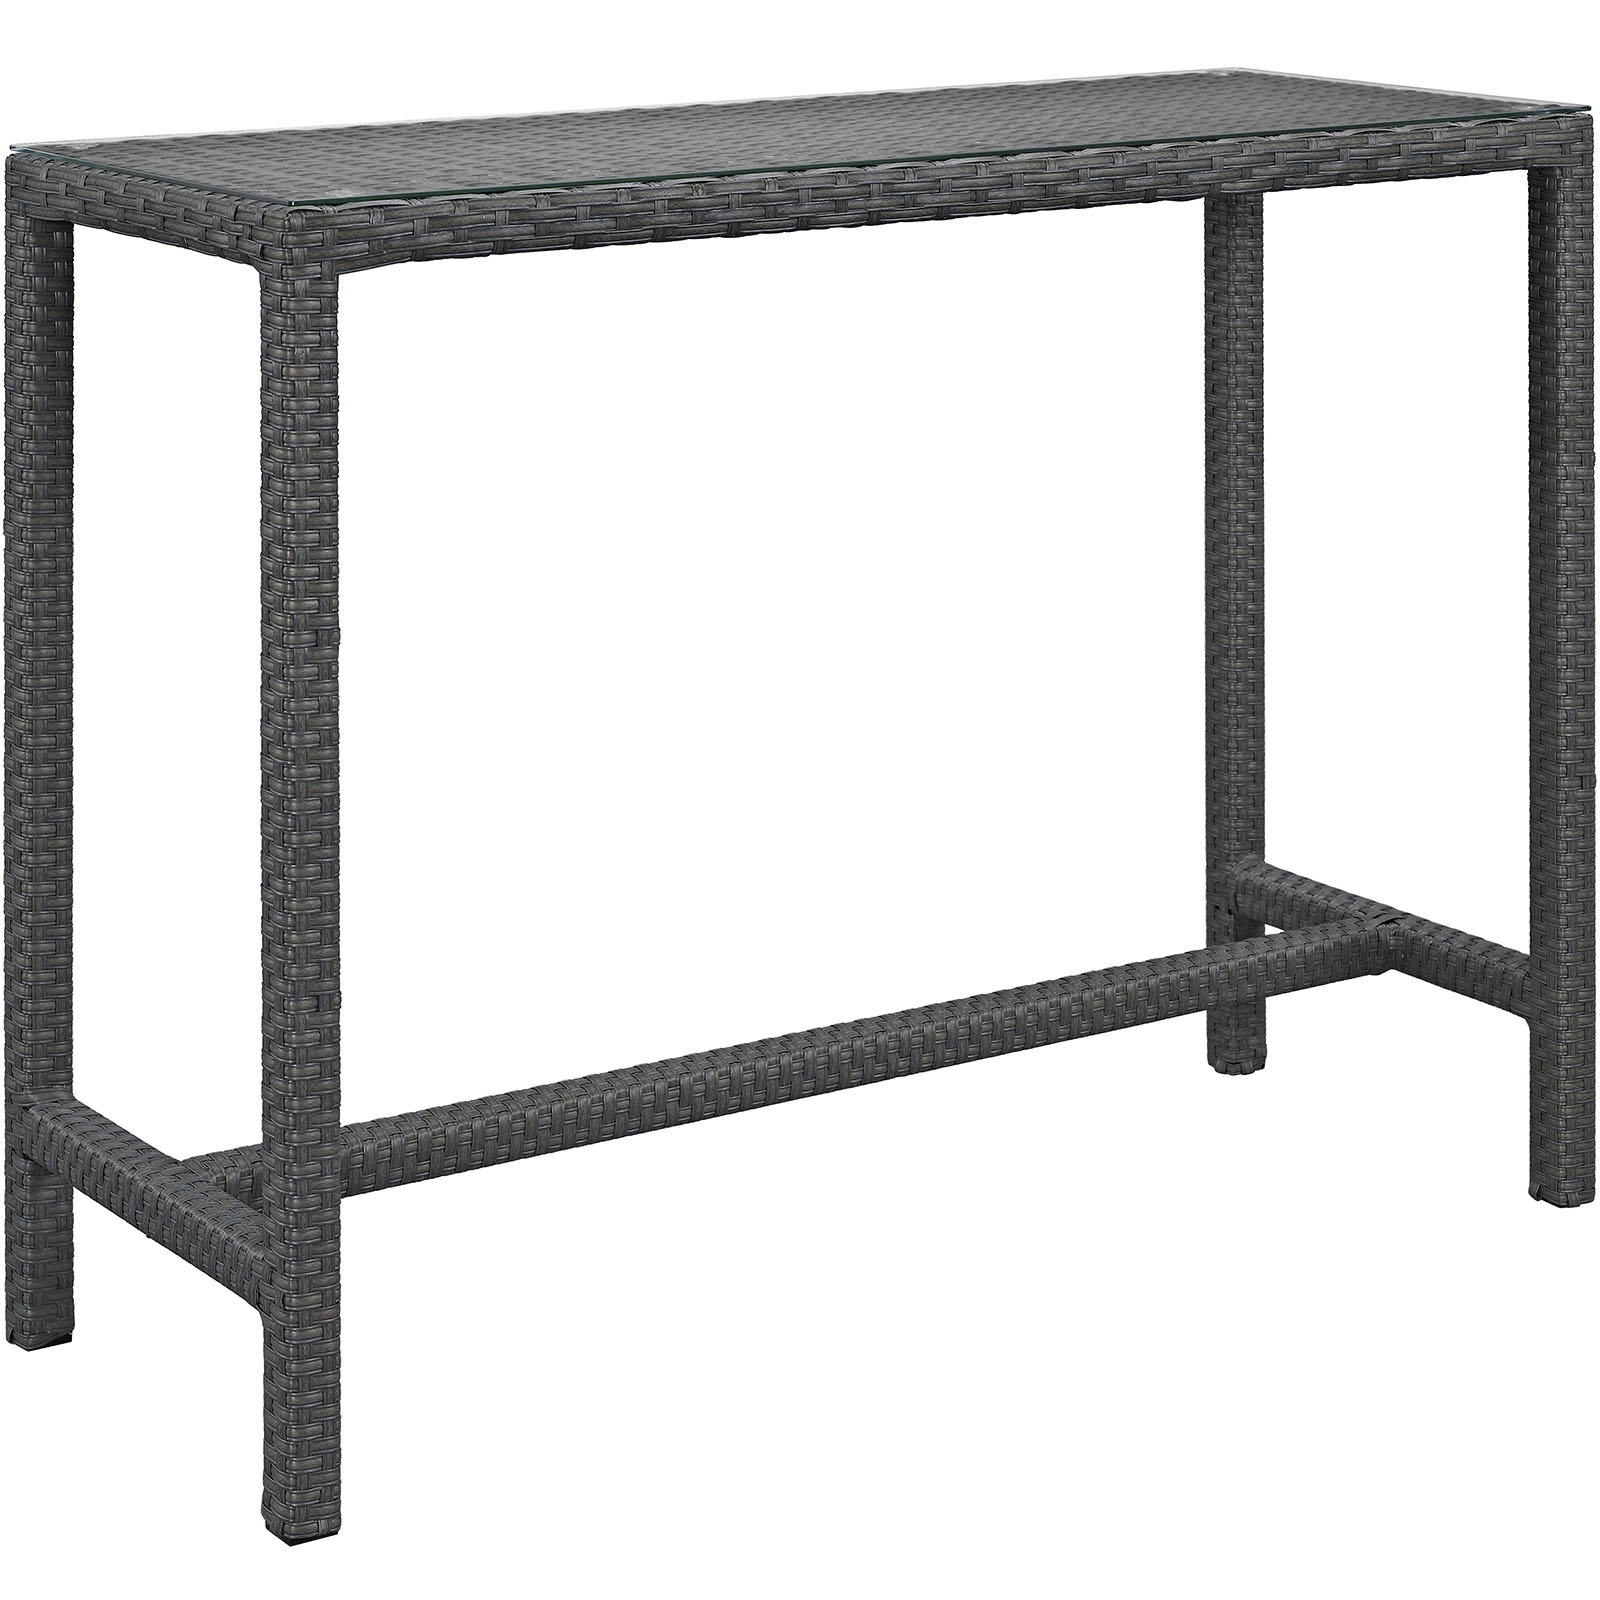 Sojourn Large Outdoor Patio Bar Table in Chocolate